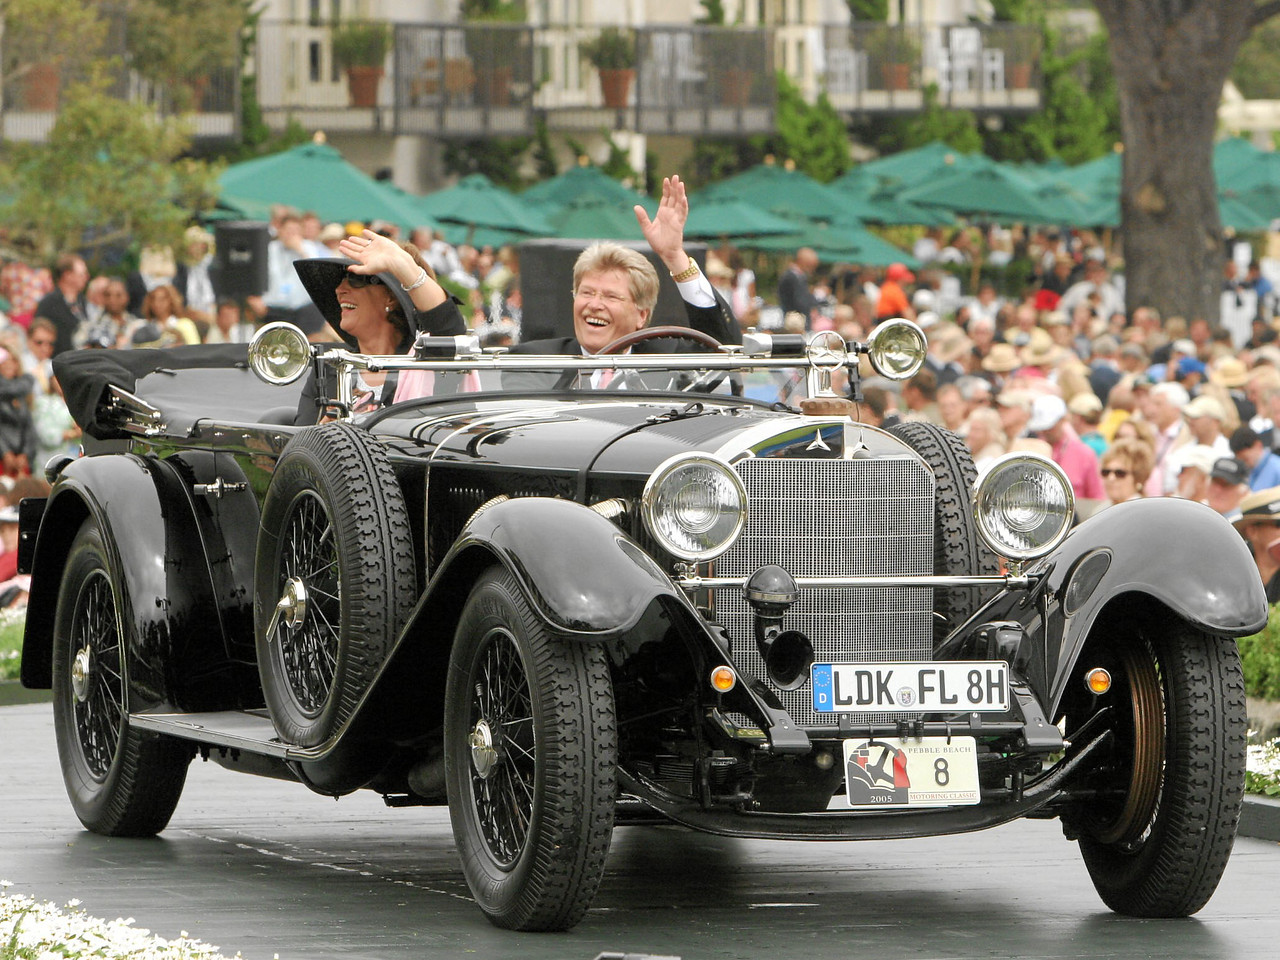 1928 Mercedes-Benz 680S Sports Tourer owned by Friedhelm Loh from Dietzhölztal, Germany 3rd Class I (Mercedes-Benz Prewar)